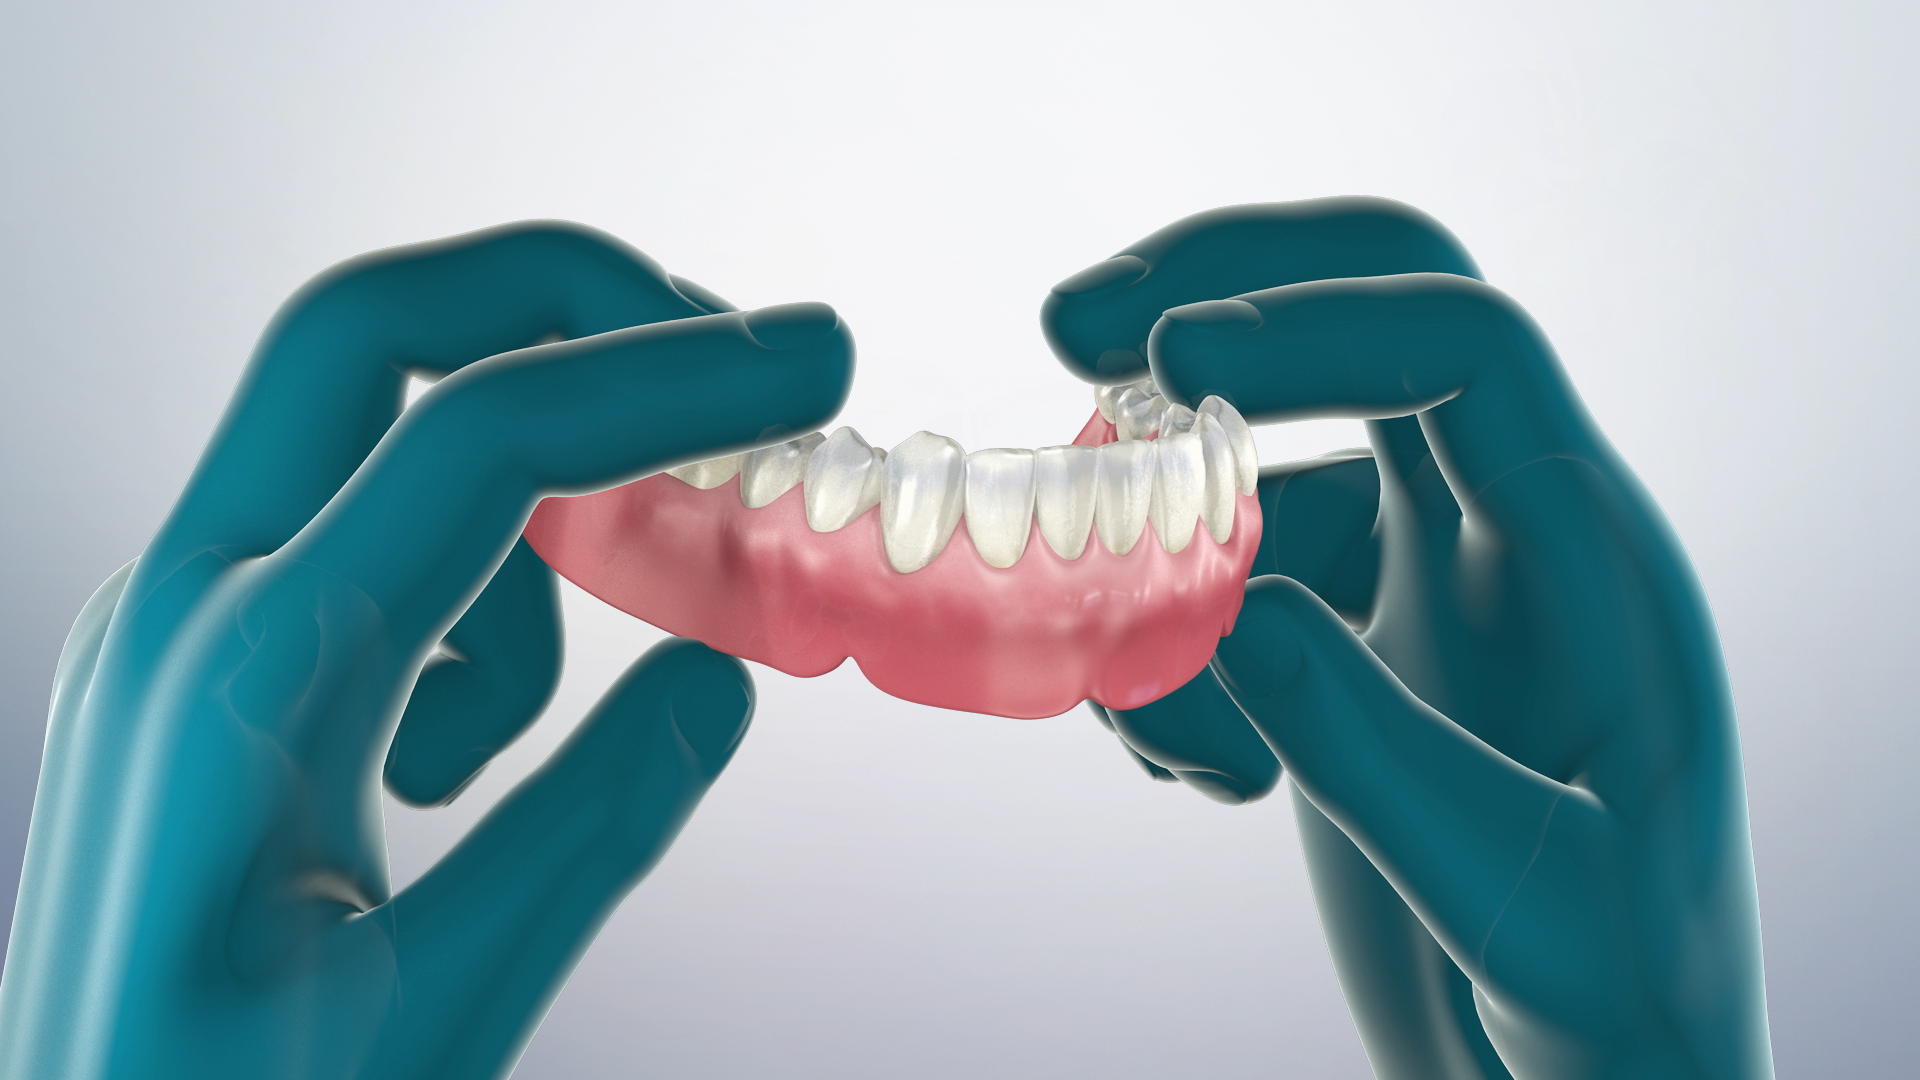 Thumbnail for a video on Post-Operative Instructions for Dentures